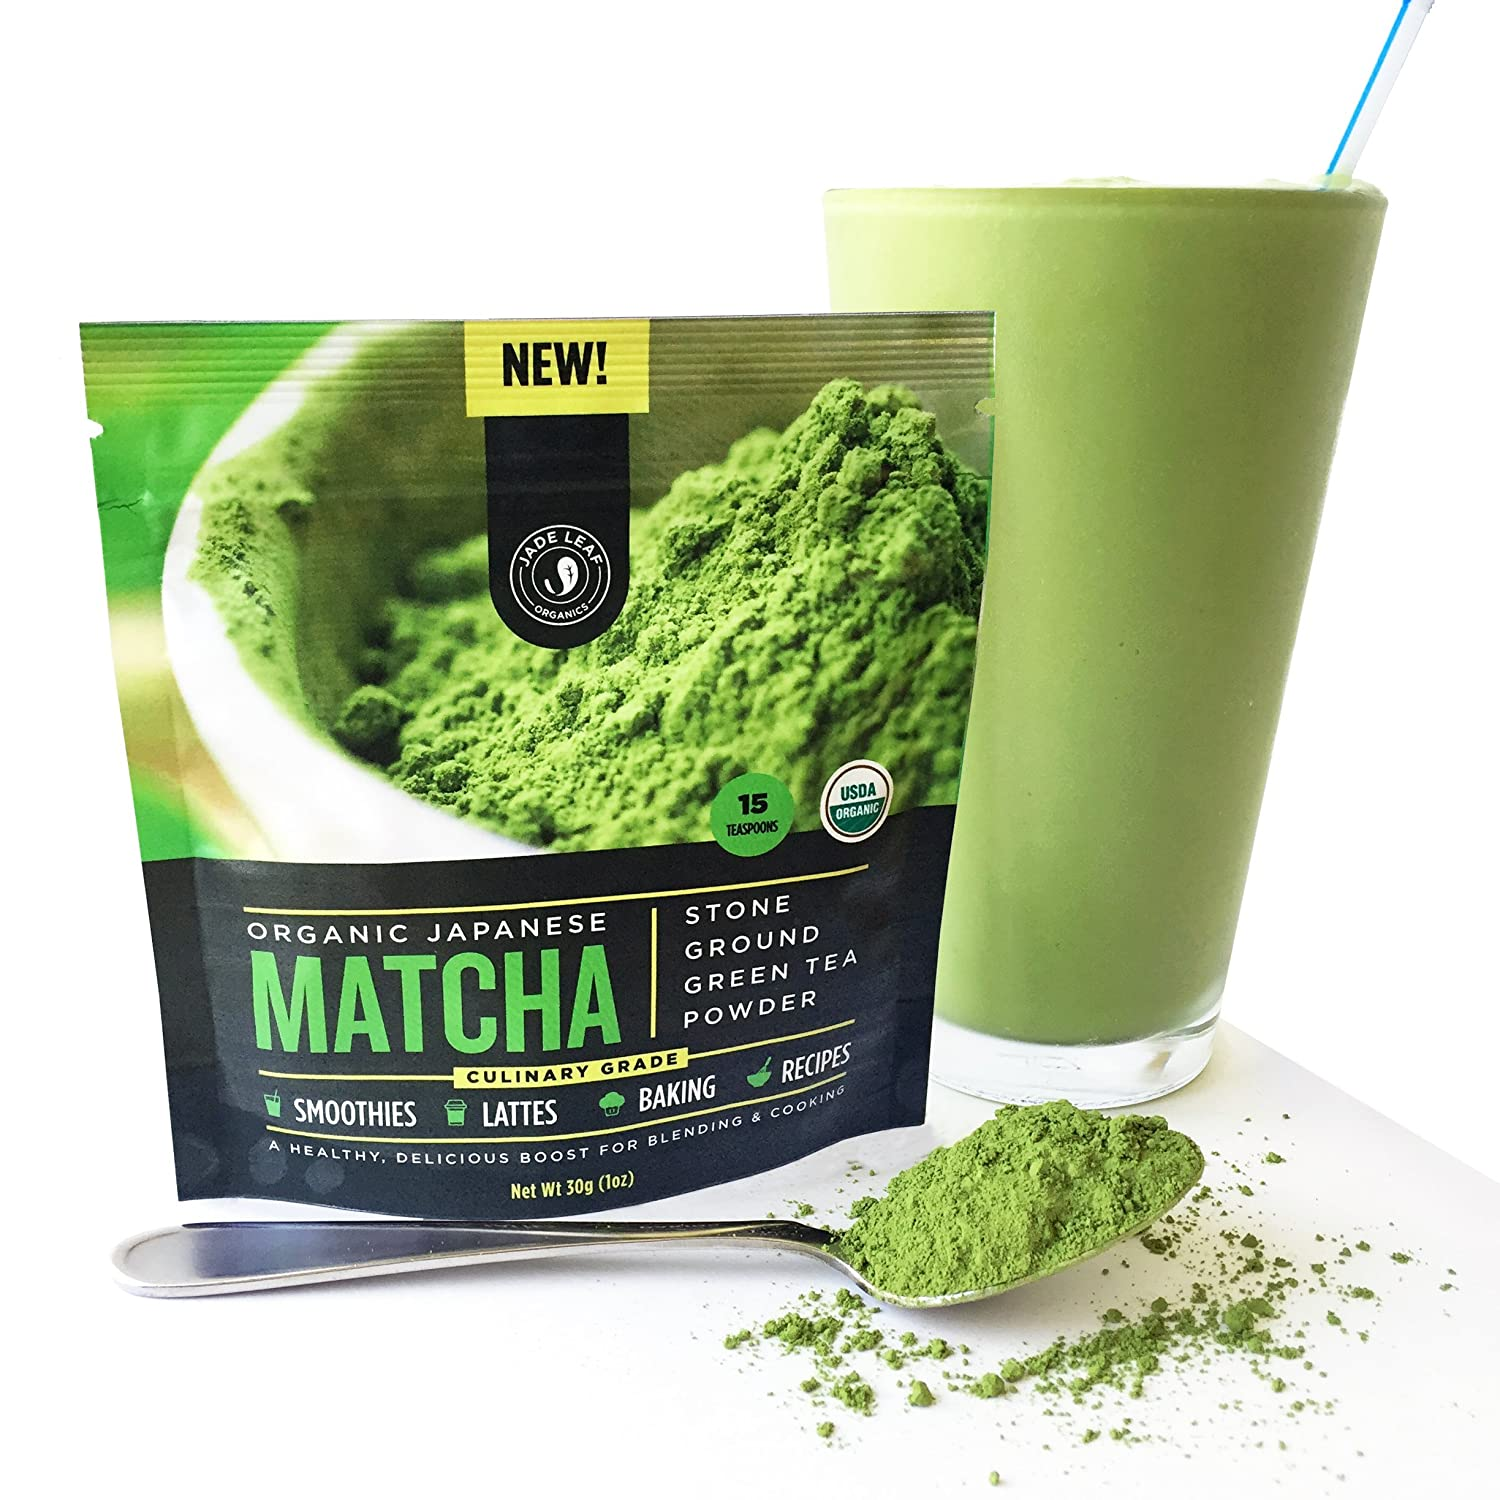 Matcha Green Tea Powder Organic - Japanese Culinary Grade (Smoothies, Lattes, Baking, Recipes) - Antioxidants, Energy Boost - Jade Leaf Brand [30g Starter Size]